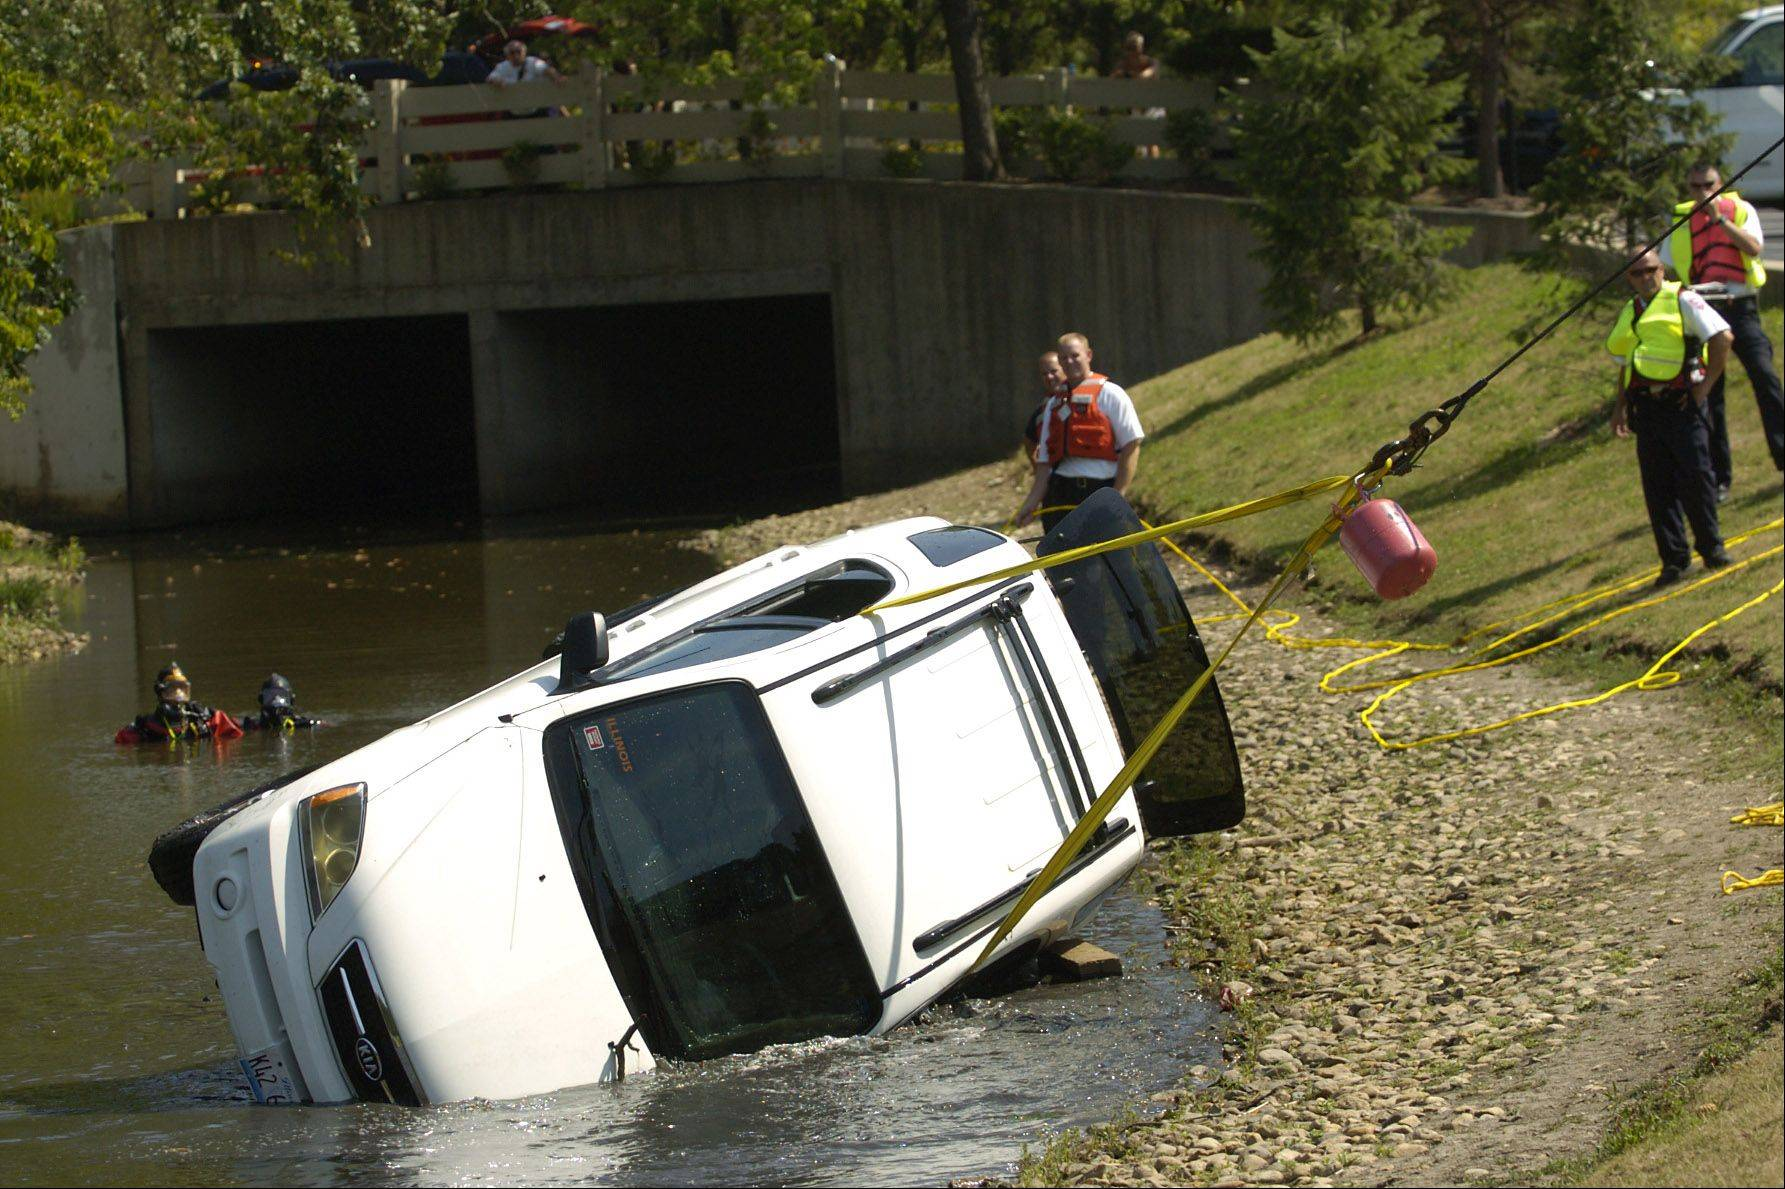 An SUV was pulled out of the pond in the Tree House Apartment complex in Schaumburg Wednesday afternoon after its driver accidentally plunged the vehicle into the water. The woman was able to get out of the vehicle unharmed.